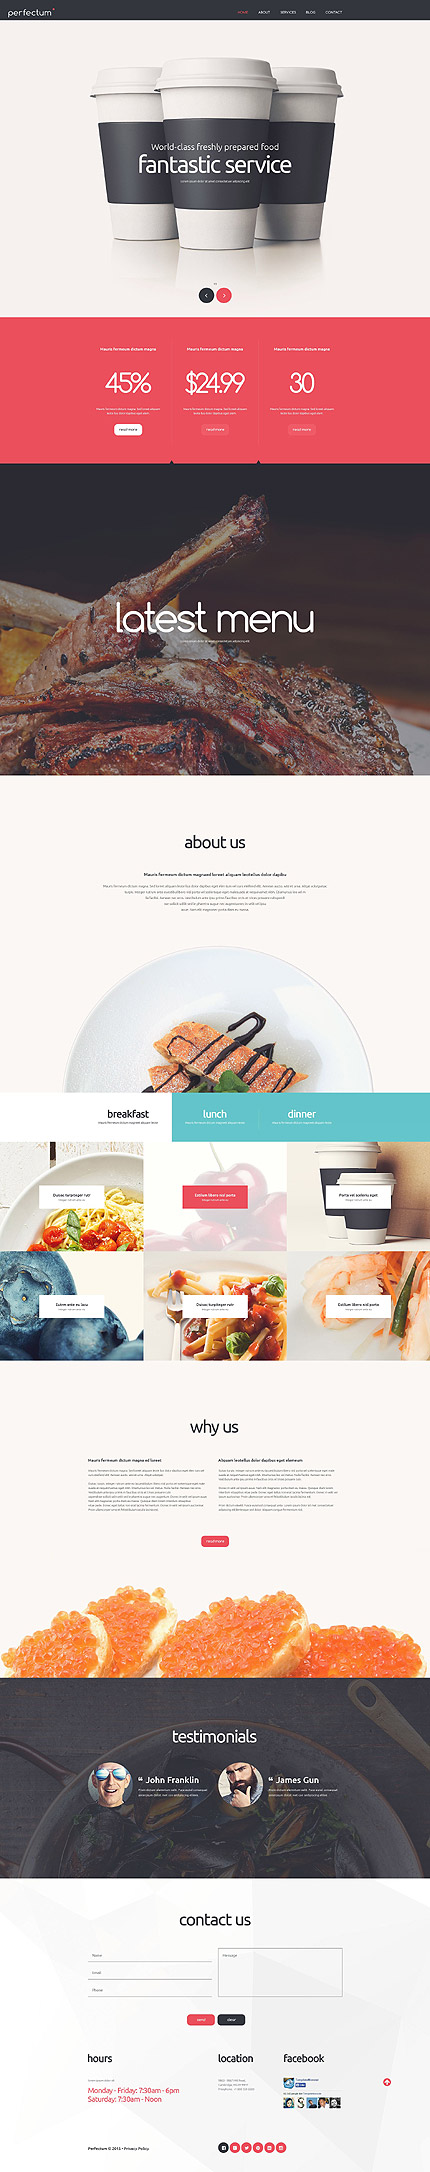 Joomla Theme/Template 54955 Main Page Screenshot